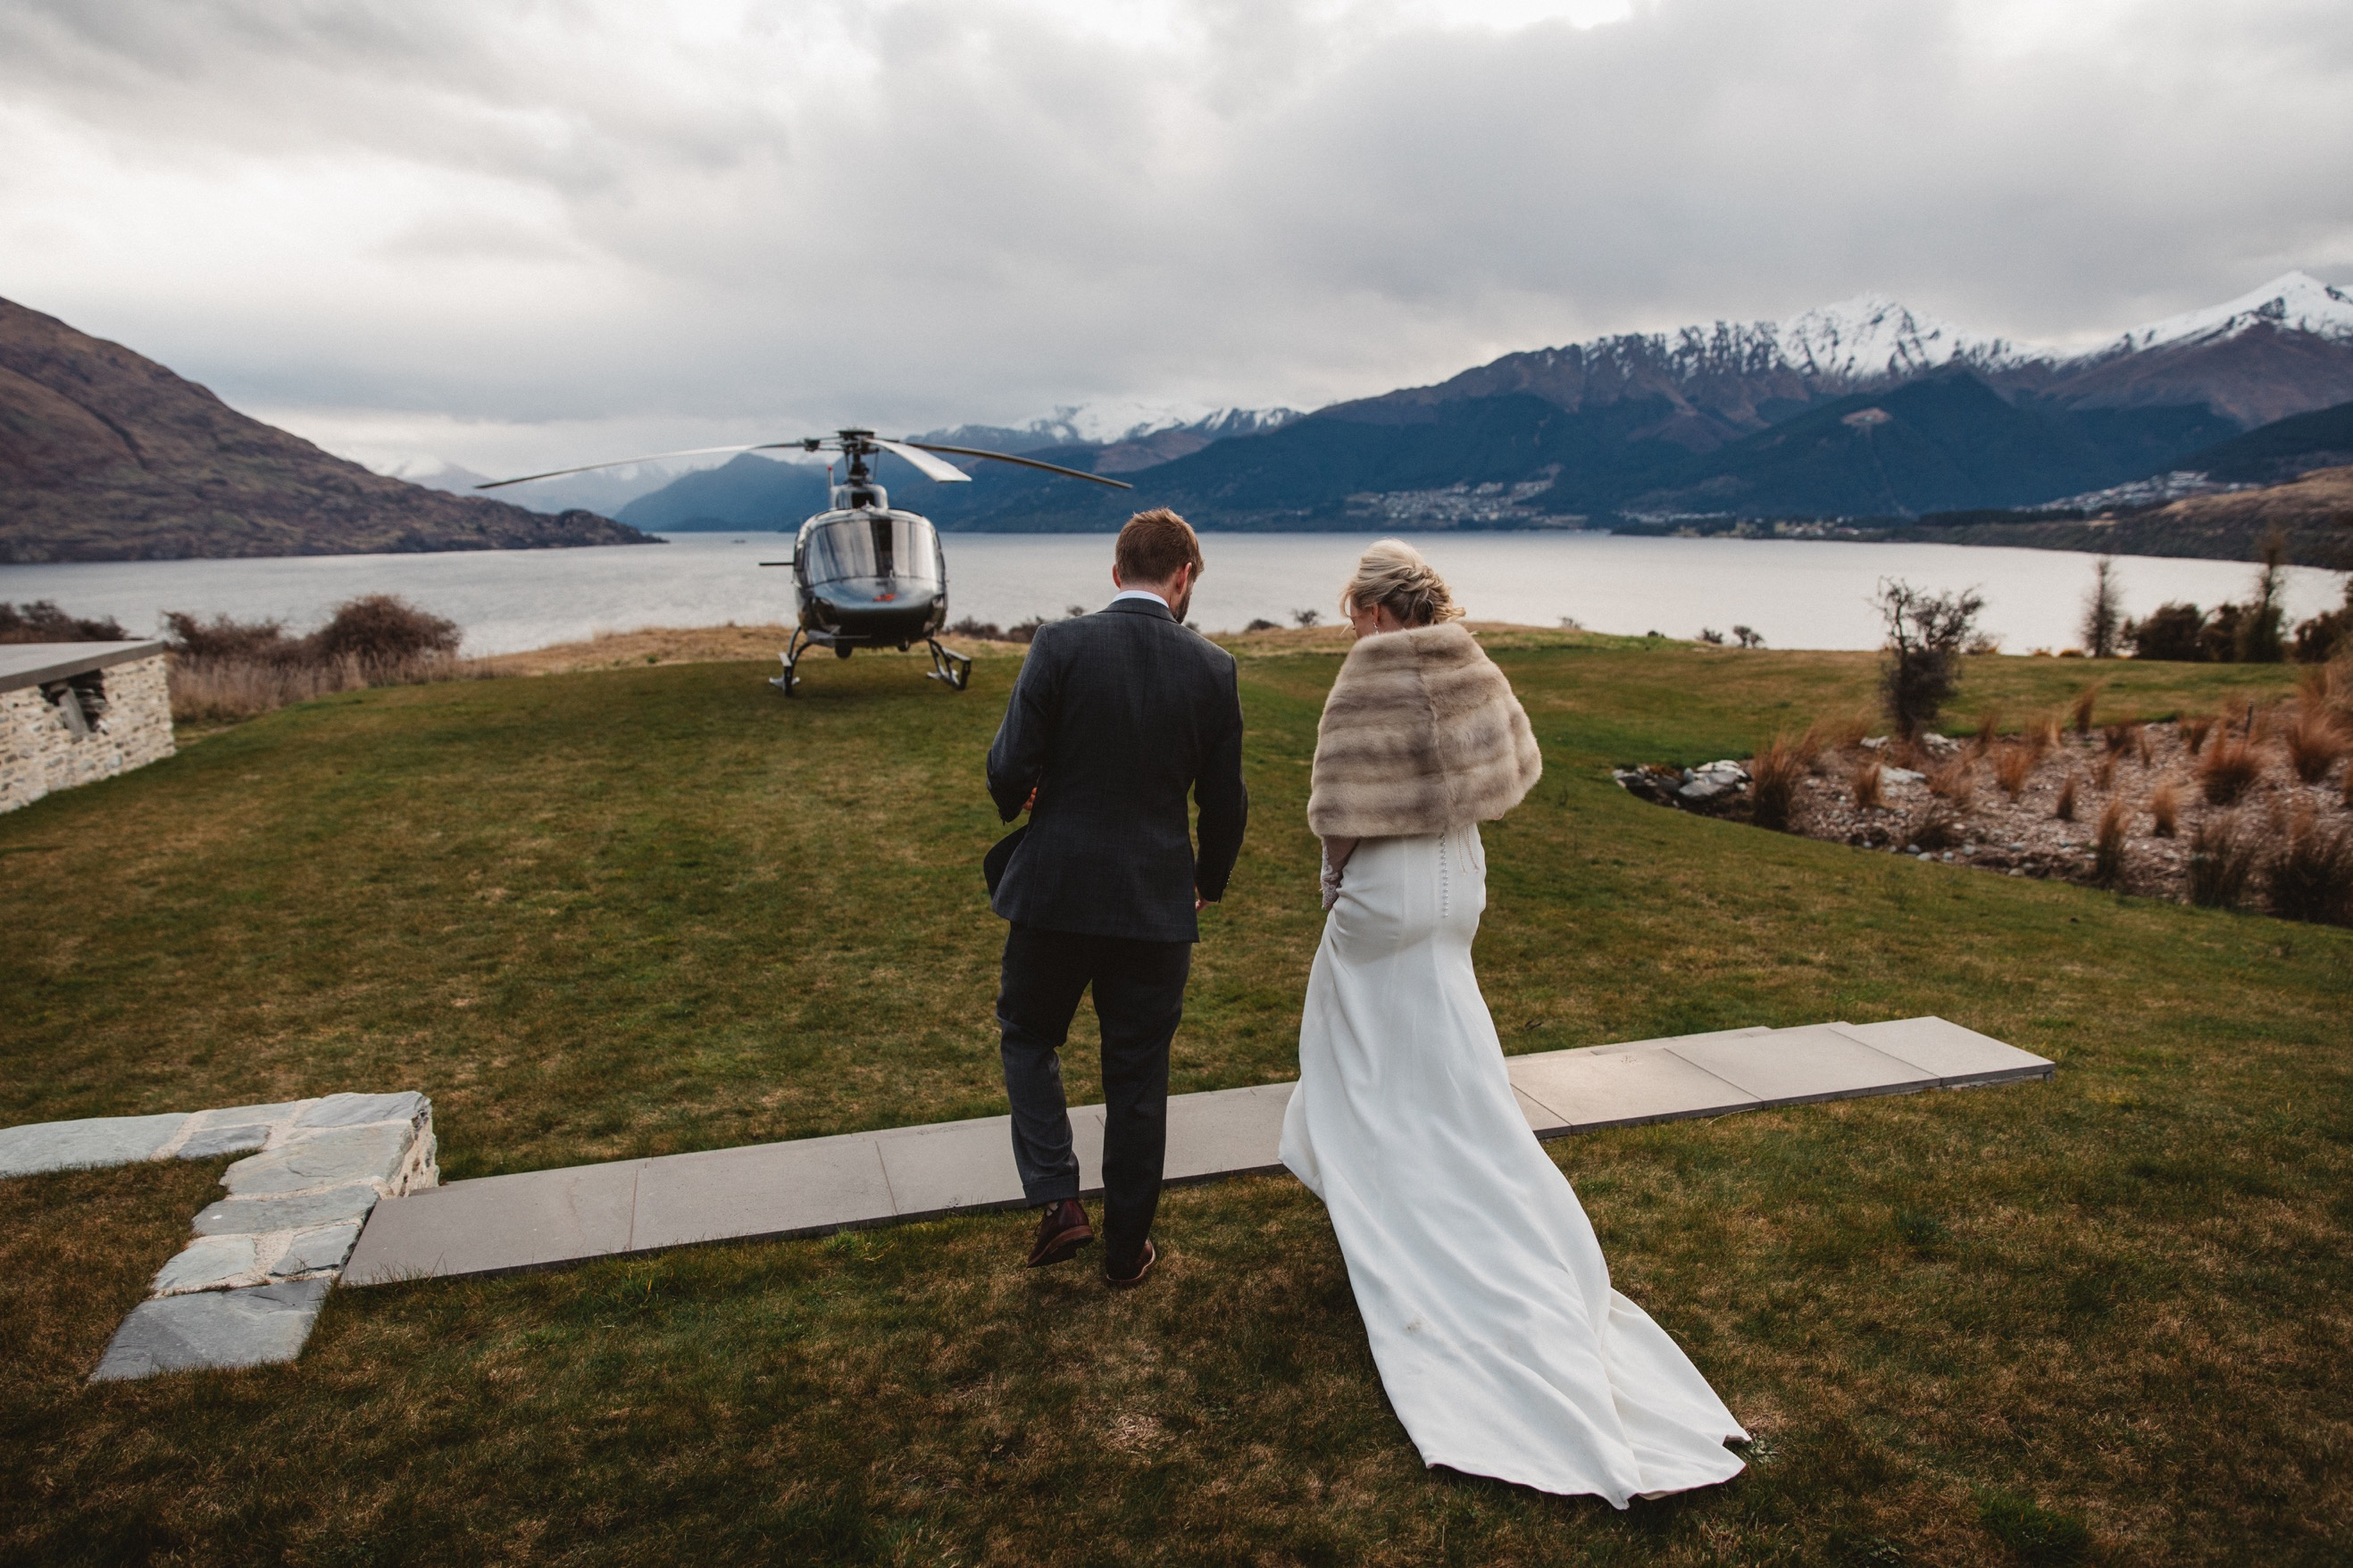 Destination heli wedding planning in winter